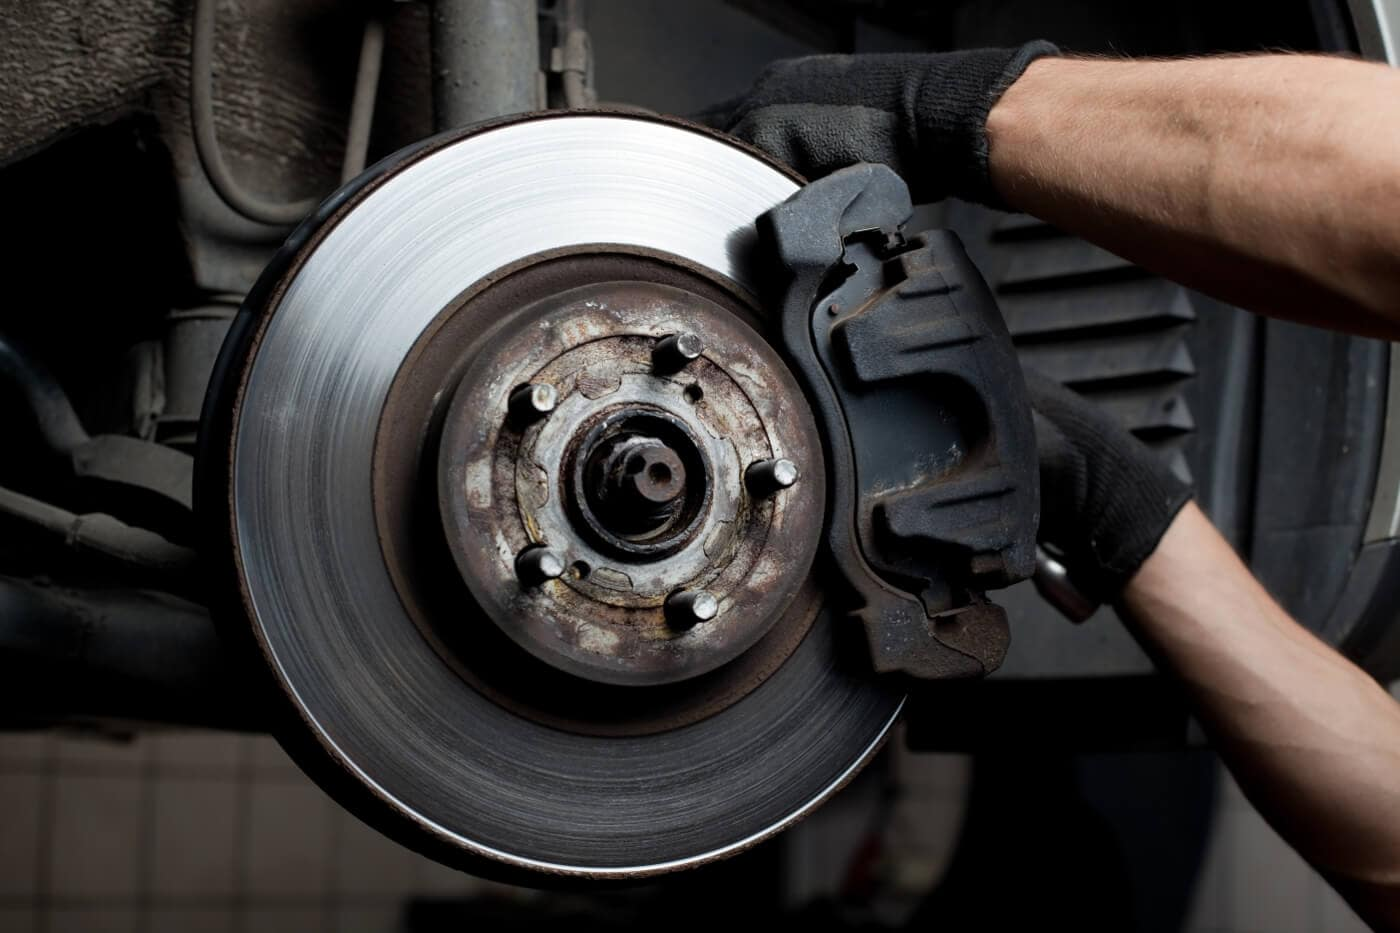 A mechanic putting on new brakes